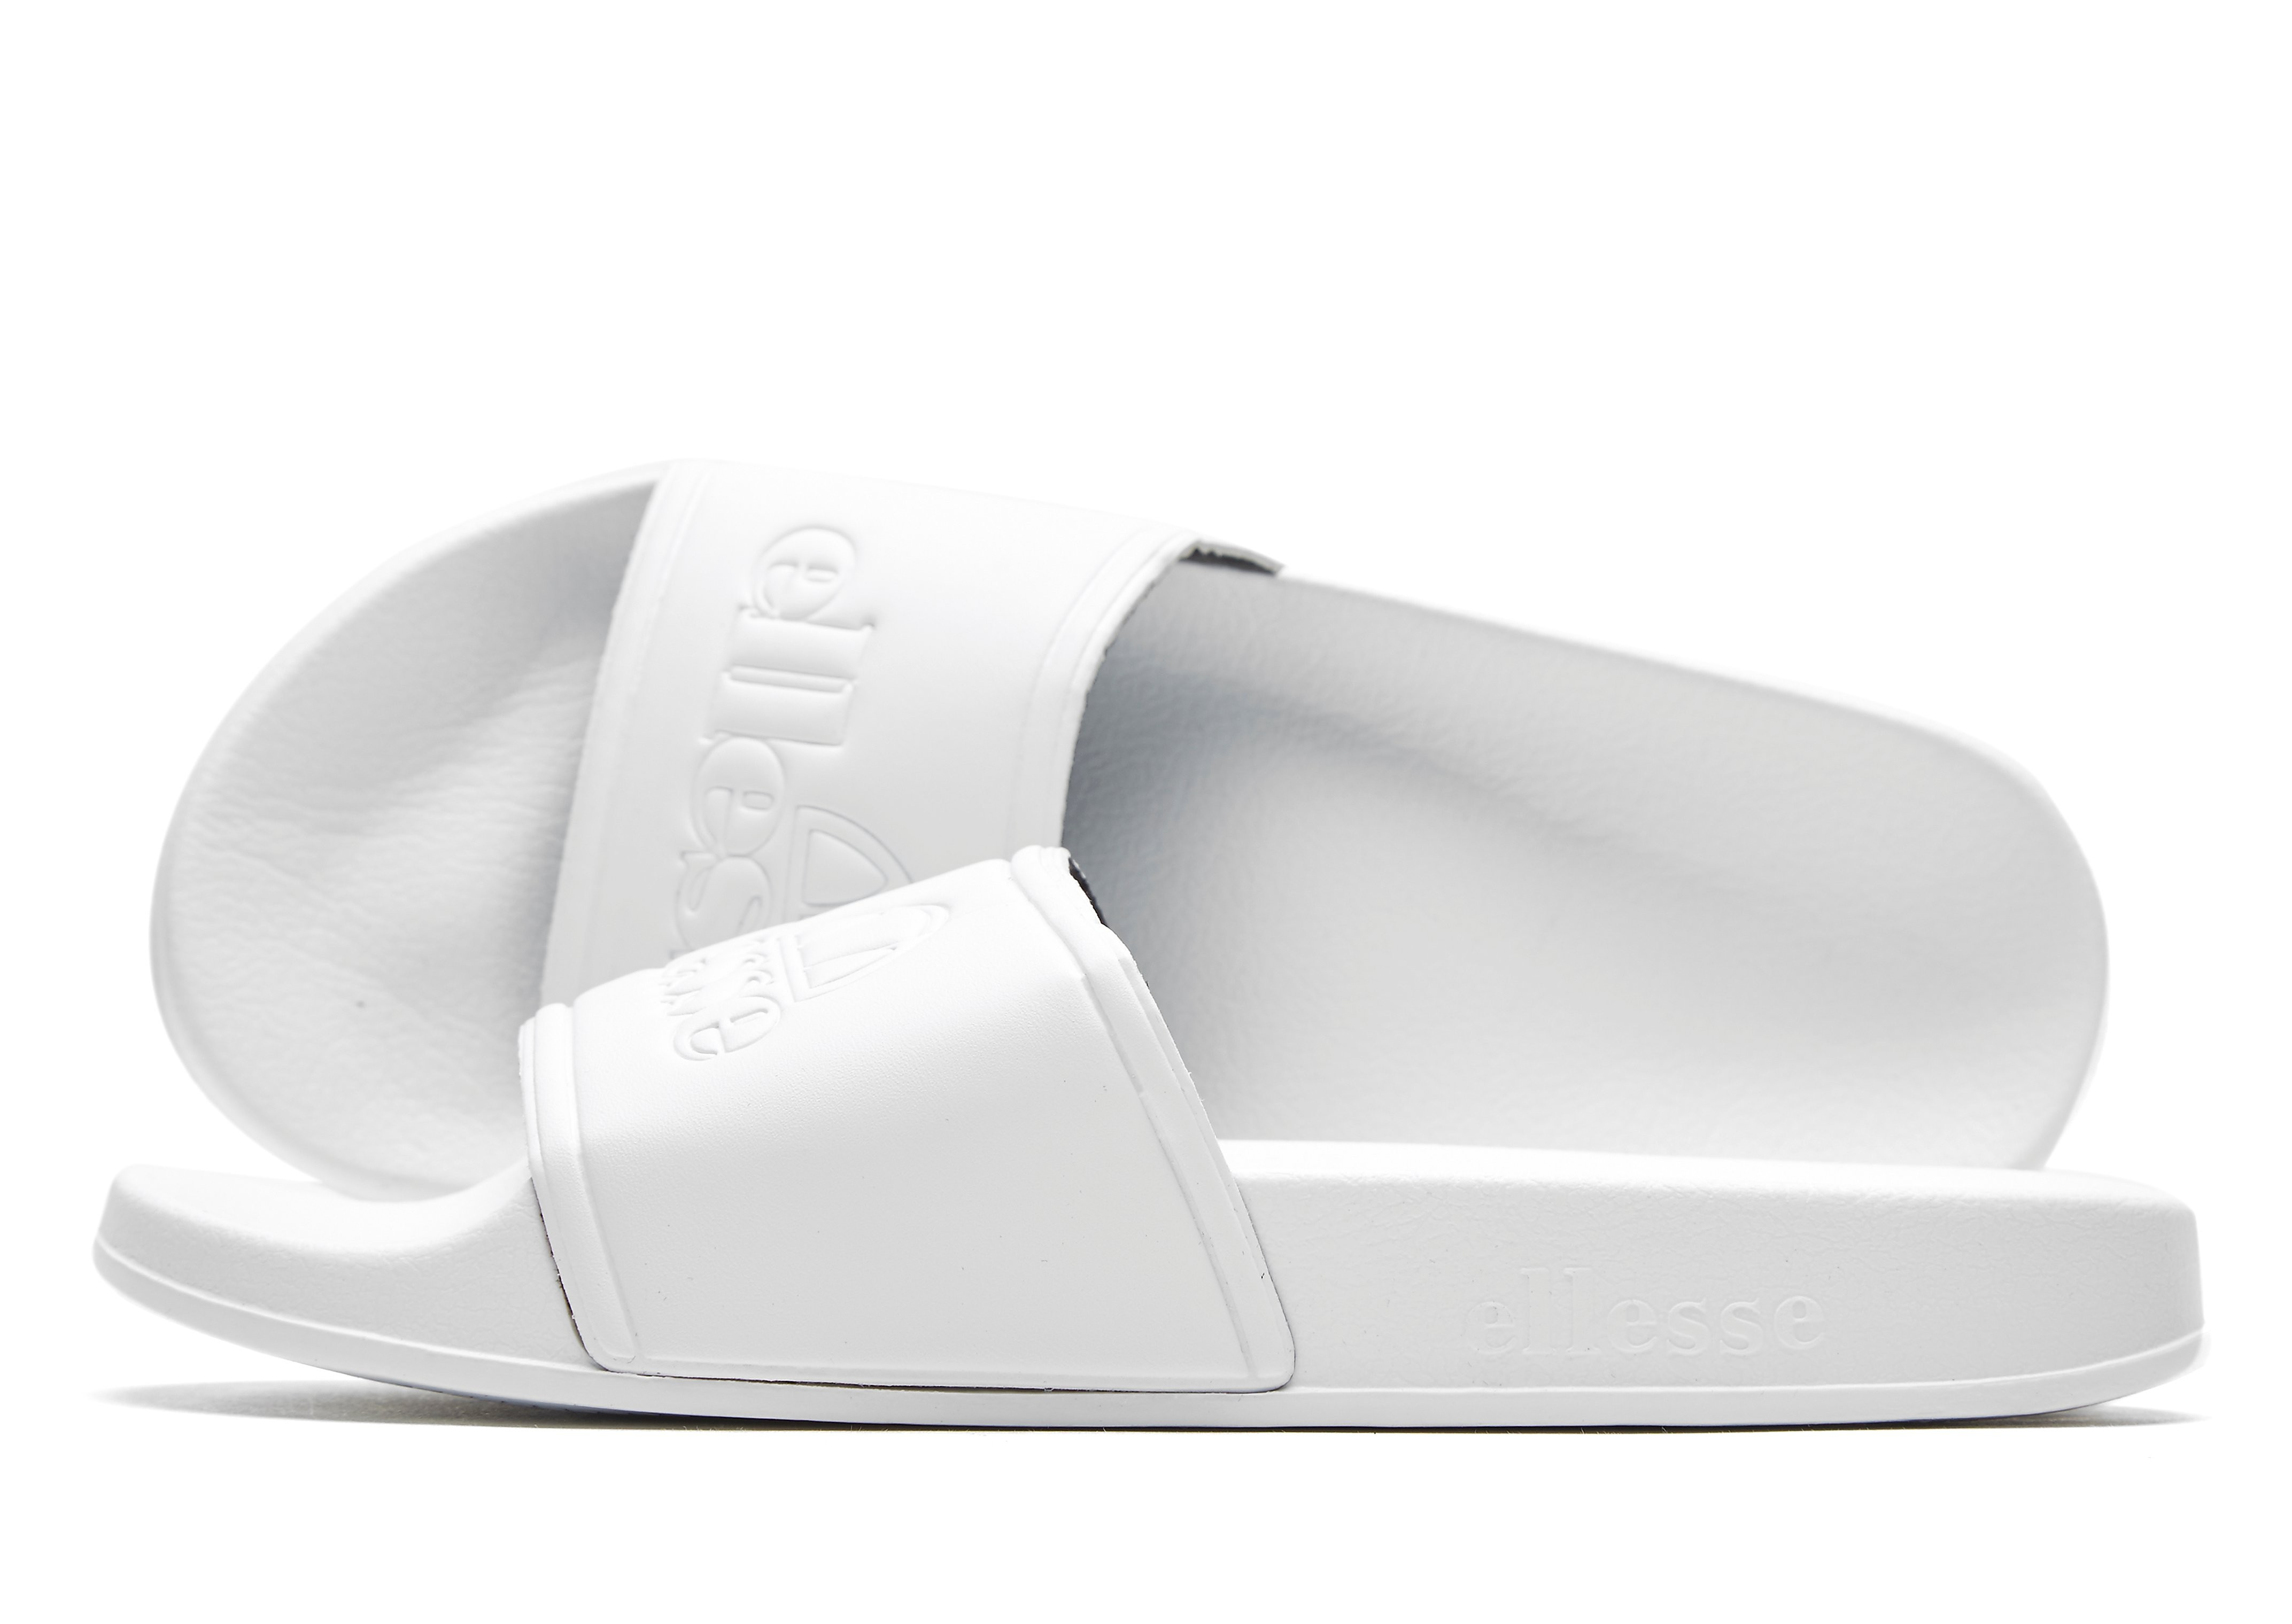 Ellesse Fillipo Mono Slides Women's